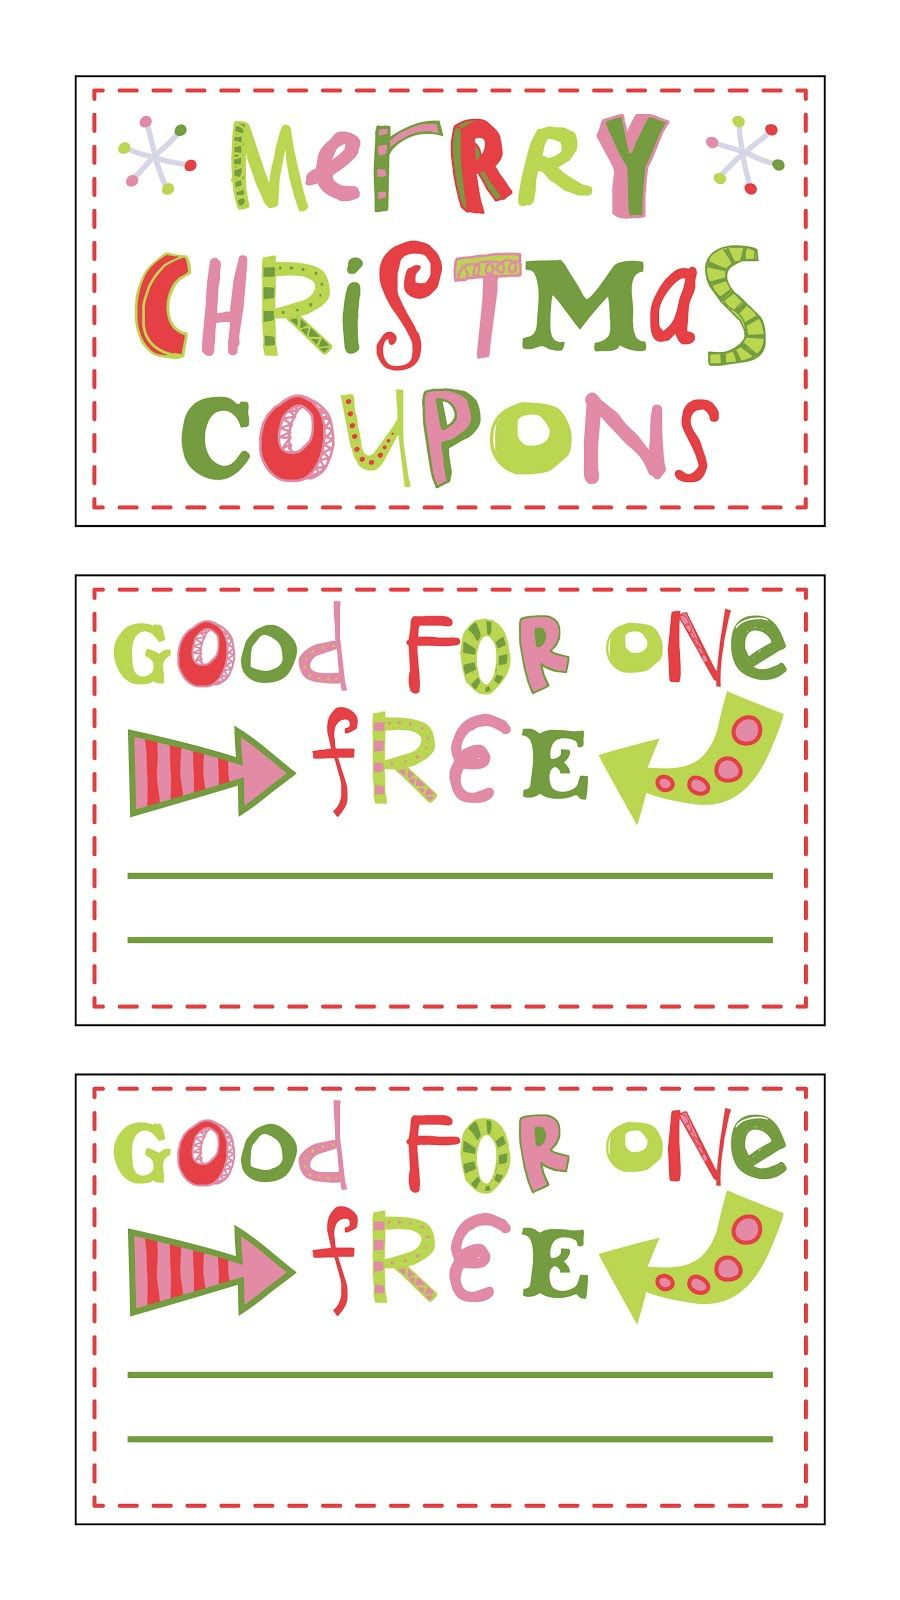 free printable christmas coupons fontaholic christmas pinterest